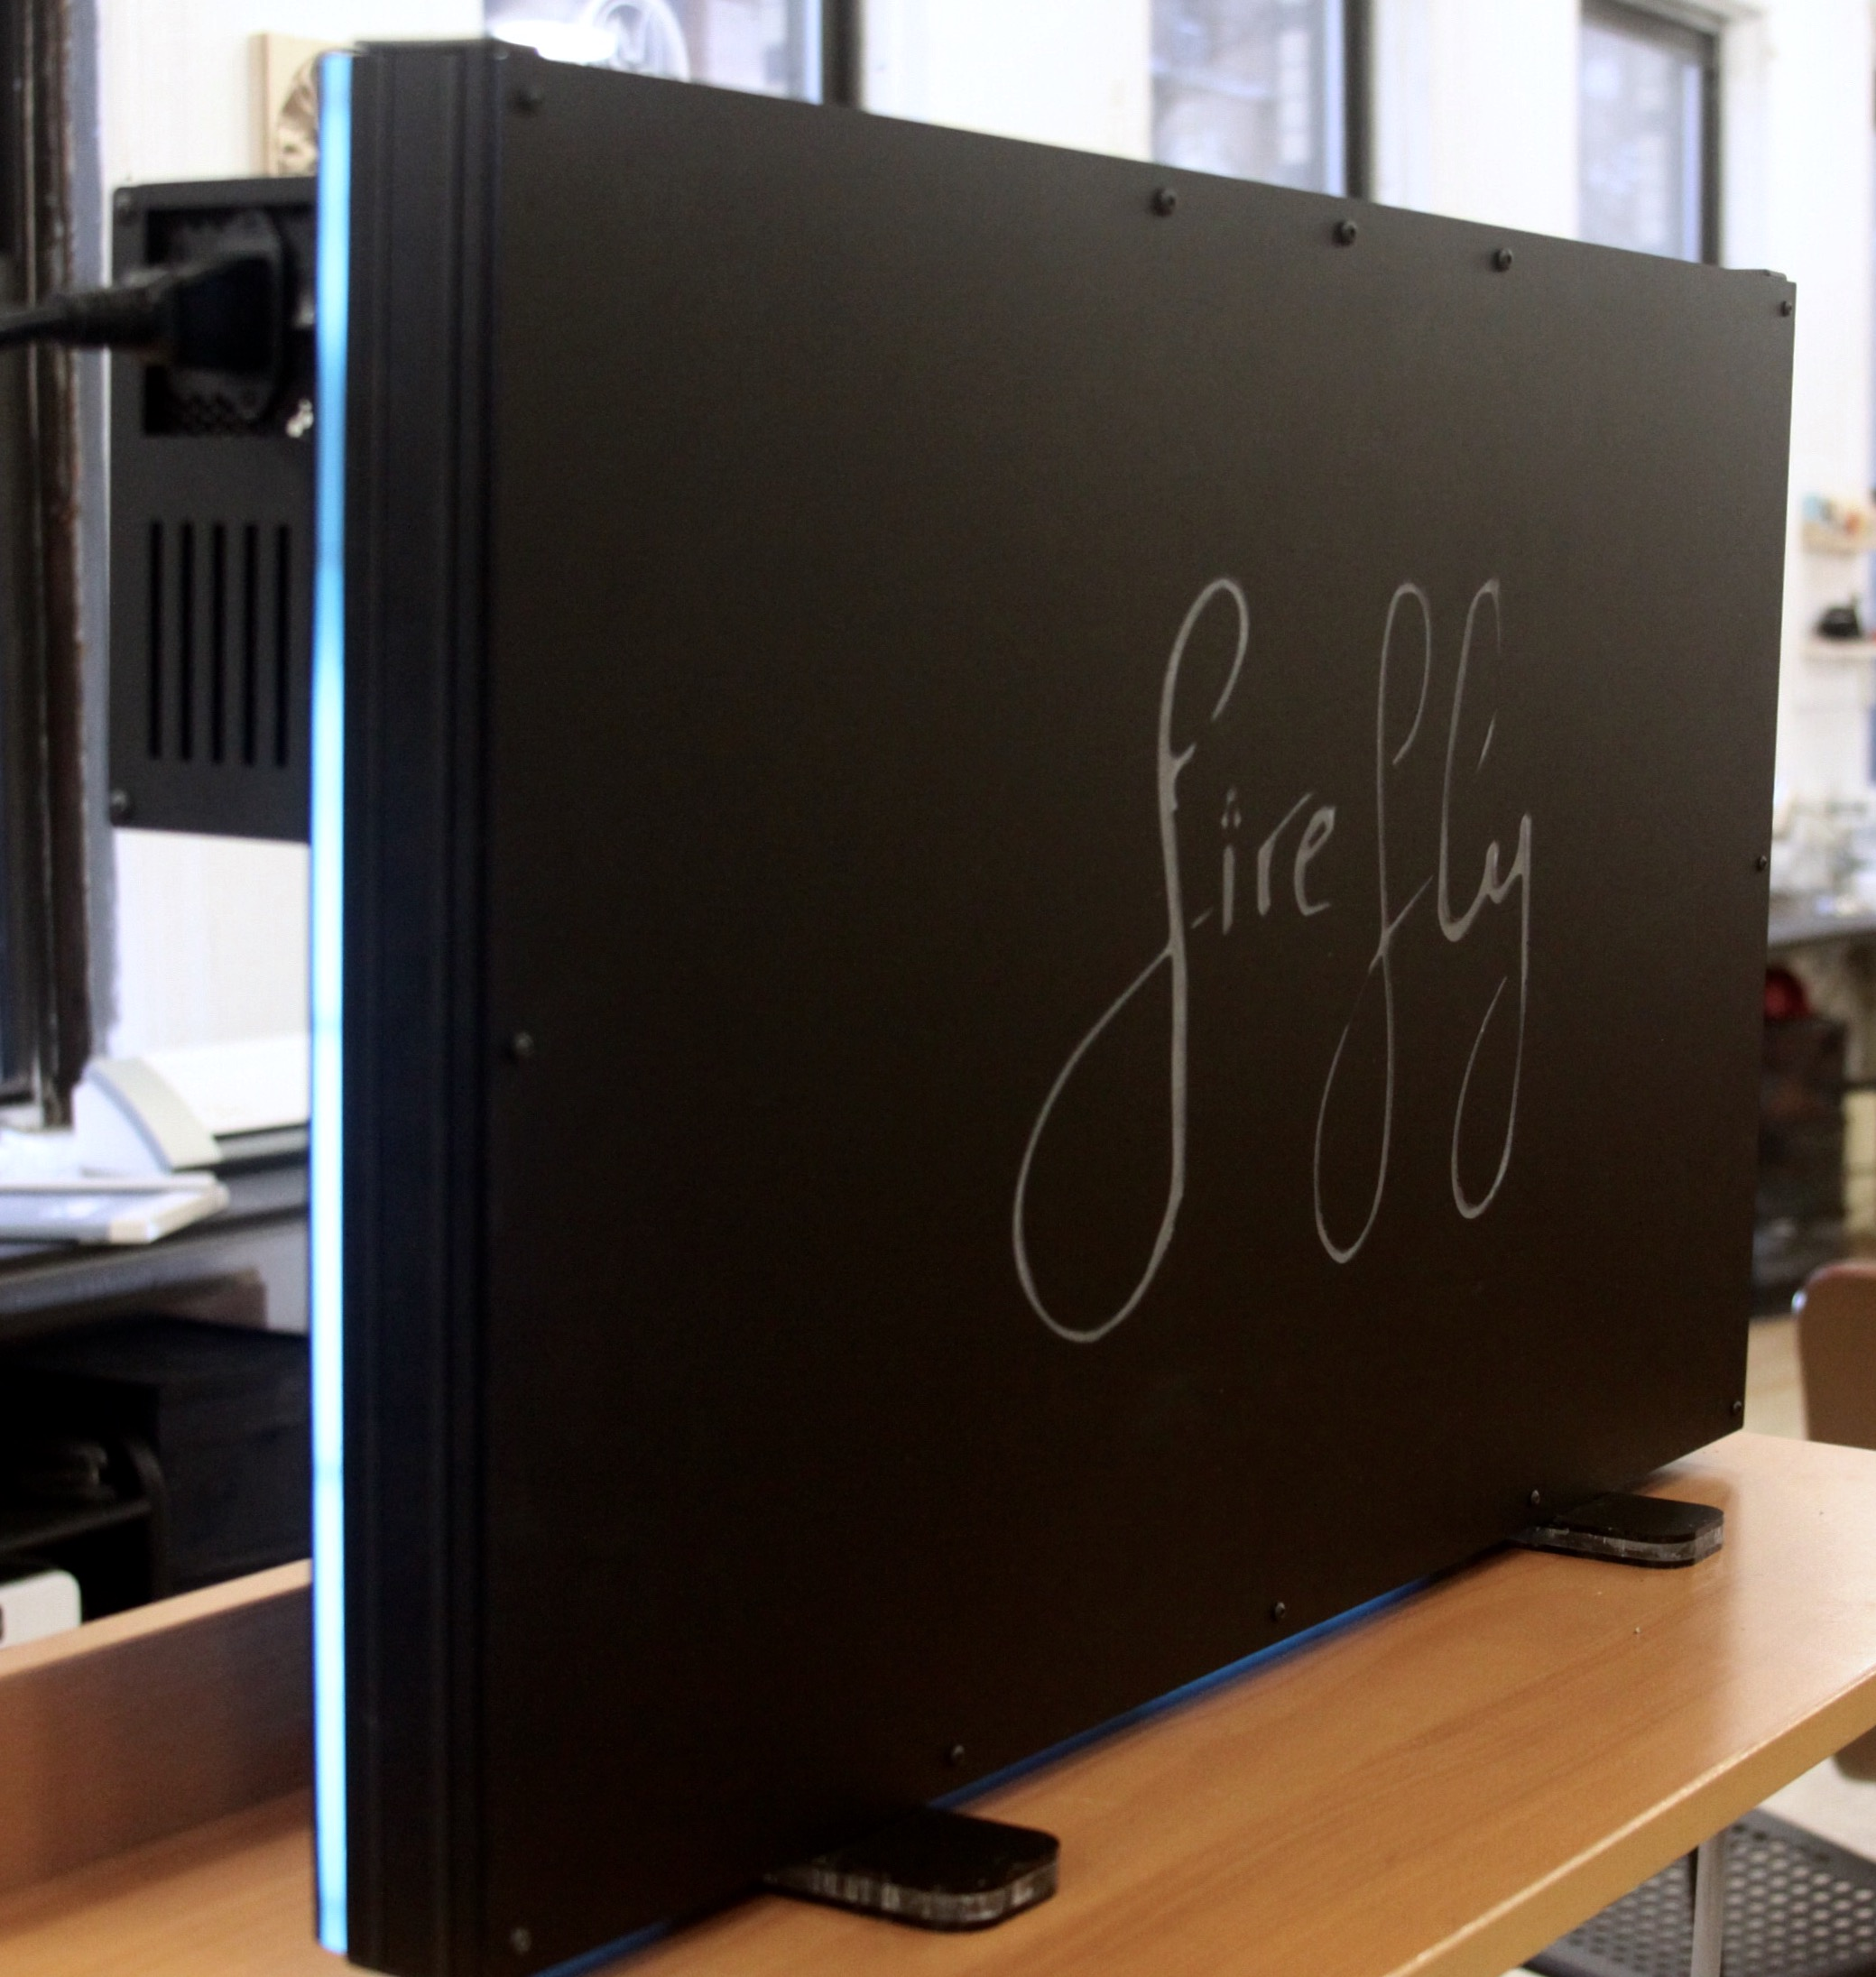 Wall-mounted PC Build with modular custom case -FireFly